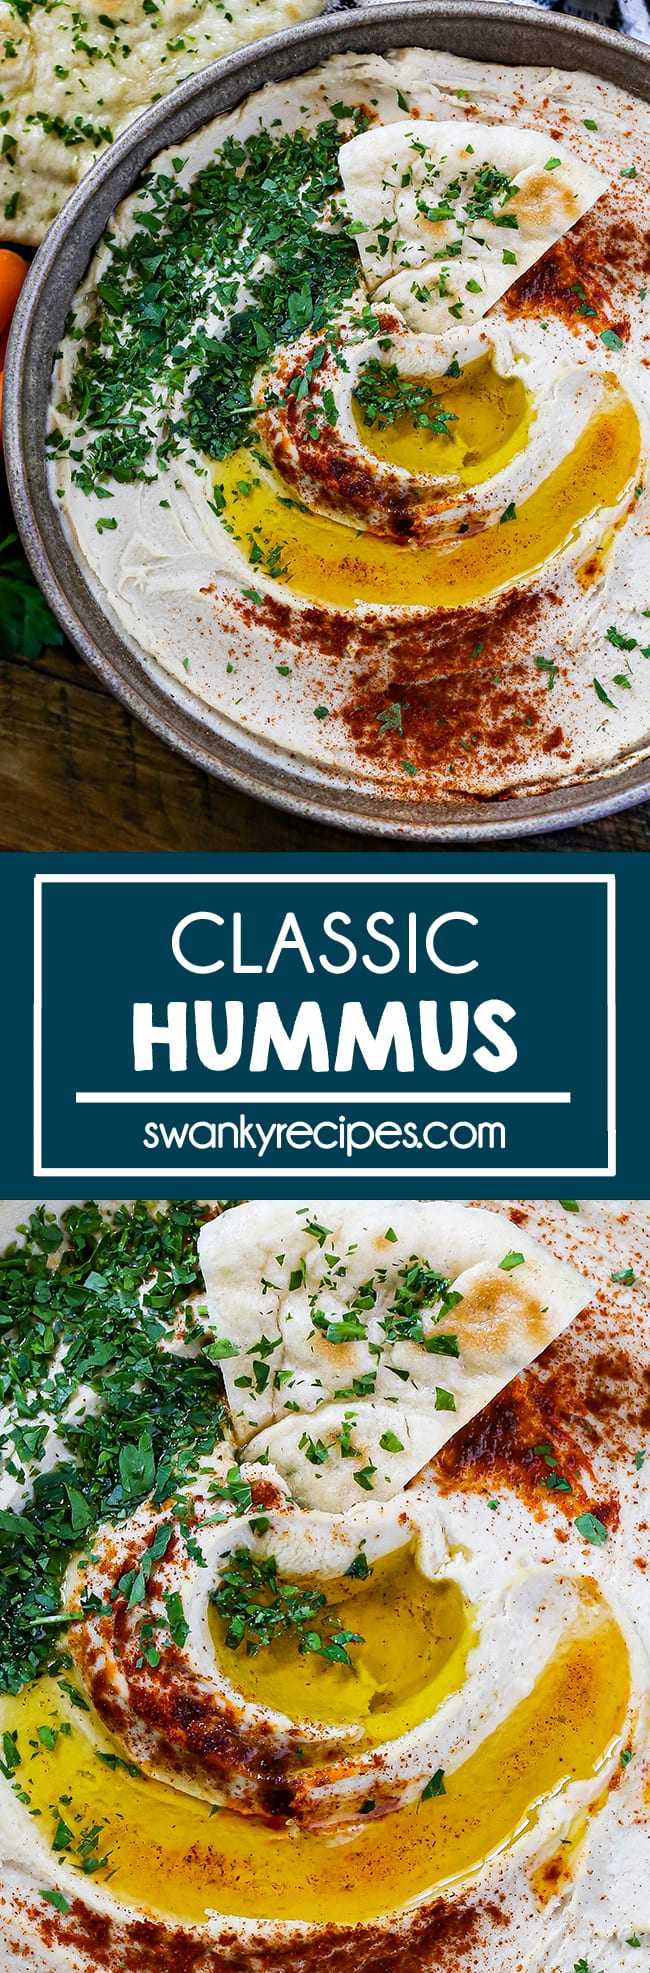 Classic Hummus - A pottery bowl filled with creamy hummus. Garnished with olive oil, paprika, and chopped green parsley. Served with a slice of naan on a wooden tray with carrots, naan, and a white napkin.